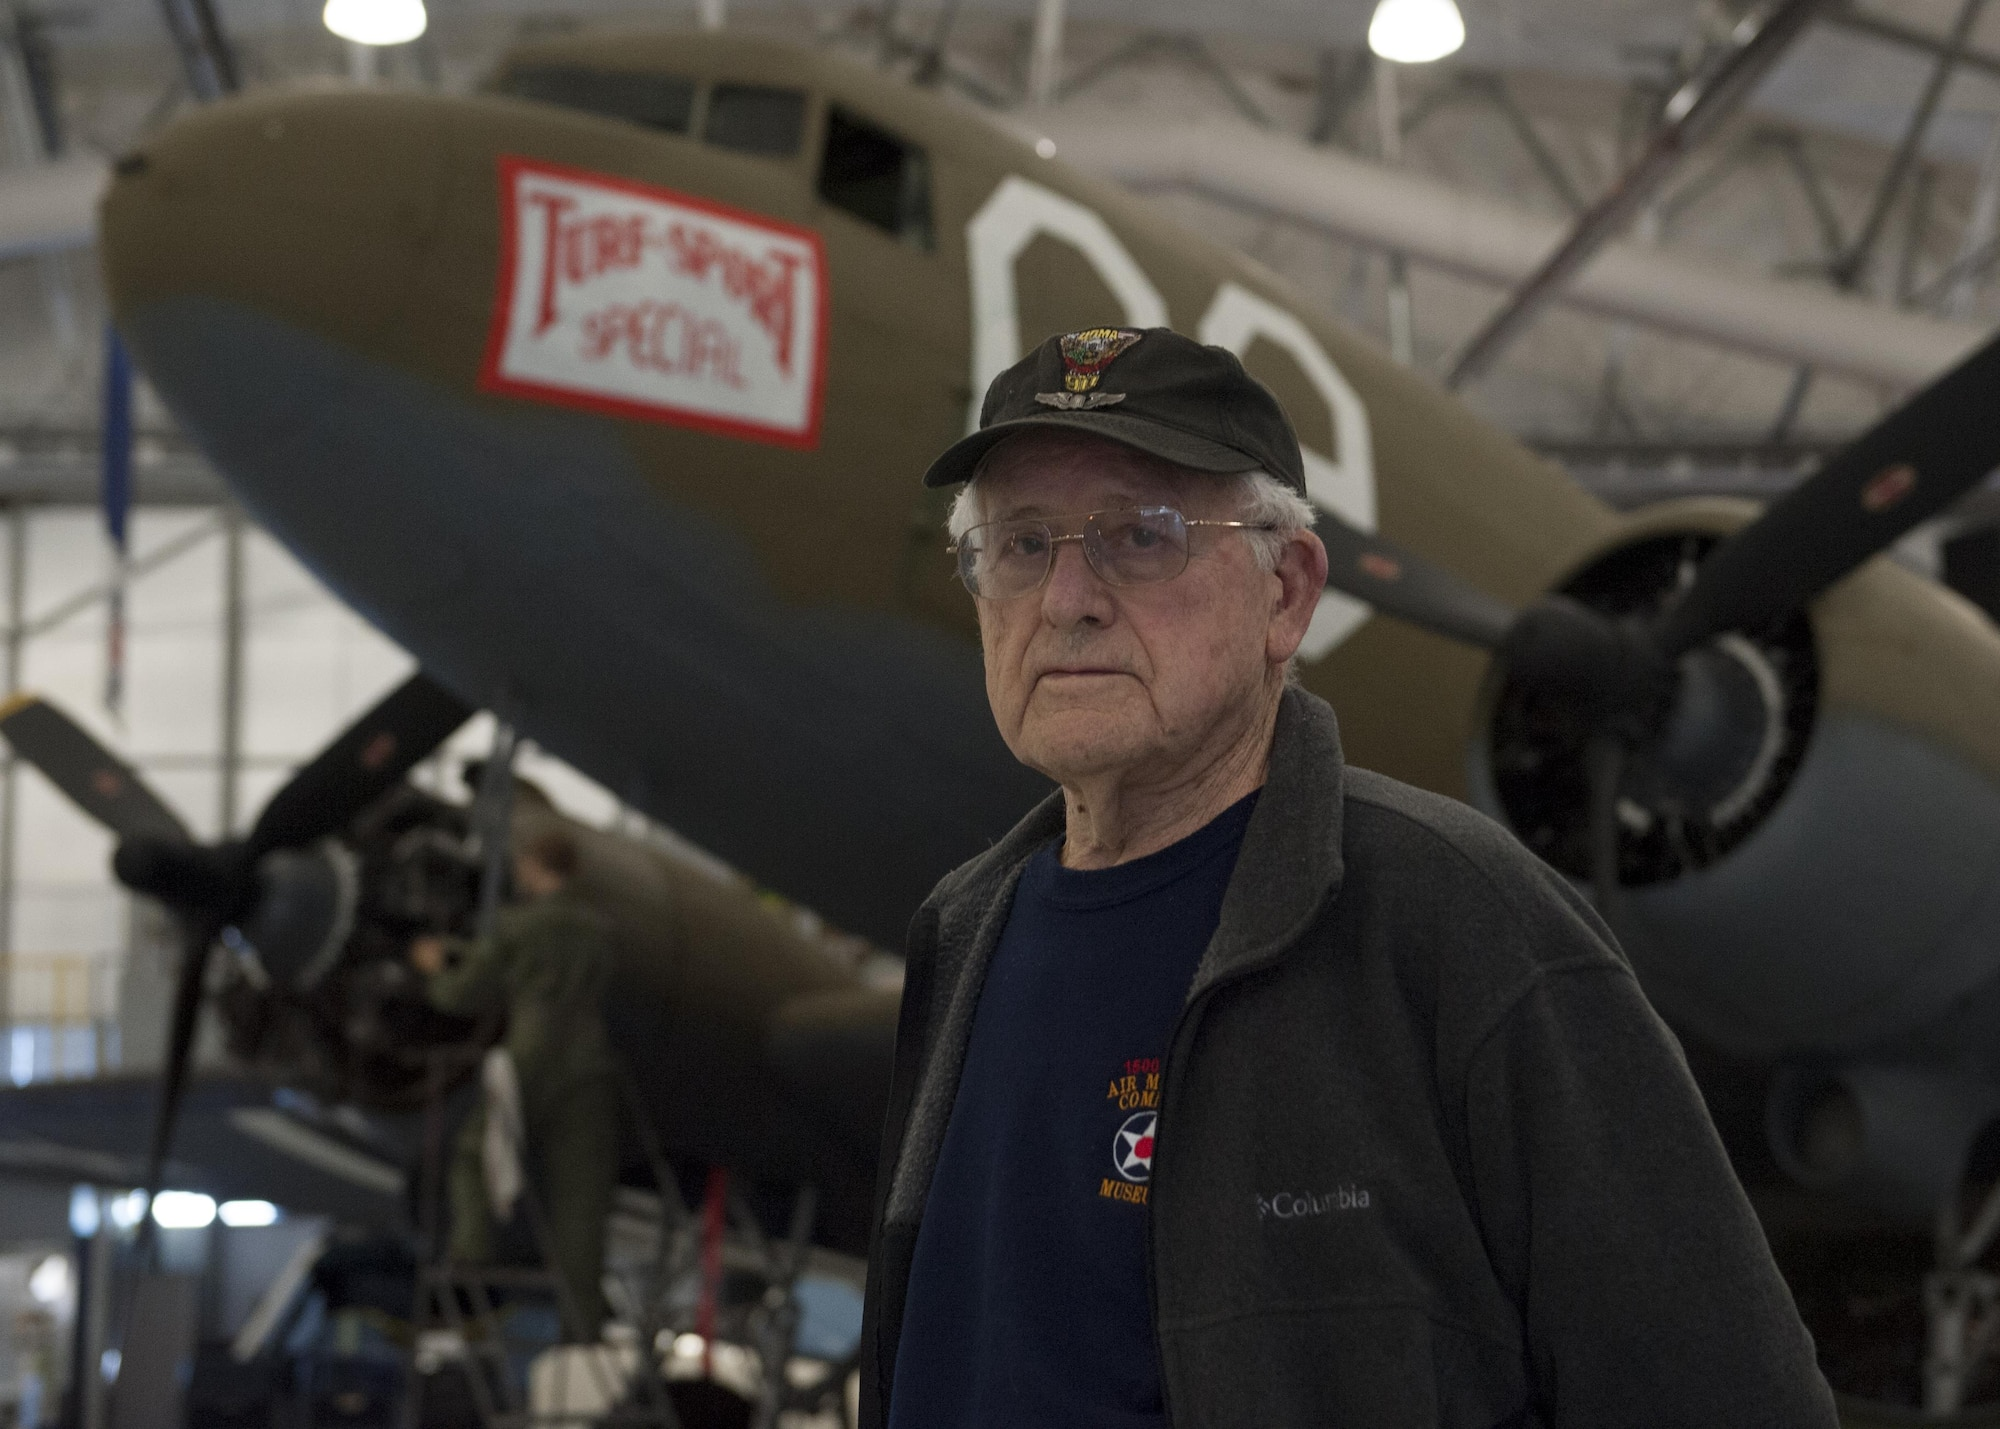 Don Clark poses in front of a C-47A Skytrain Jan. 28, 2015, at the Air Mobility Command Museum on Dover Air Force Base, Del. During World War II, Clark piloted C-47A and flew 81 missions, to include 27 combat missions. (U.S. Air Force photo/Airman 1st Class Zachary Cacicia)